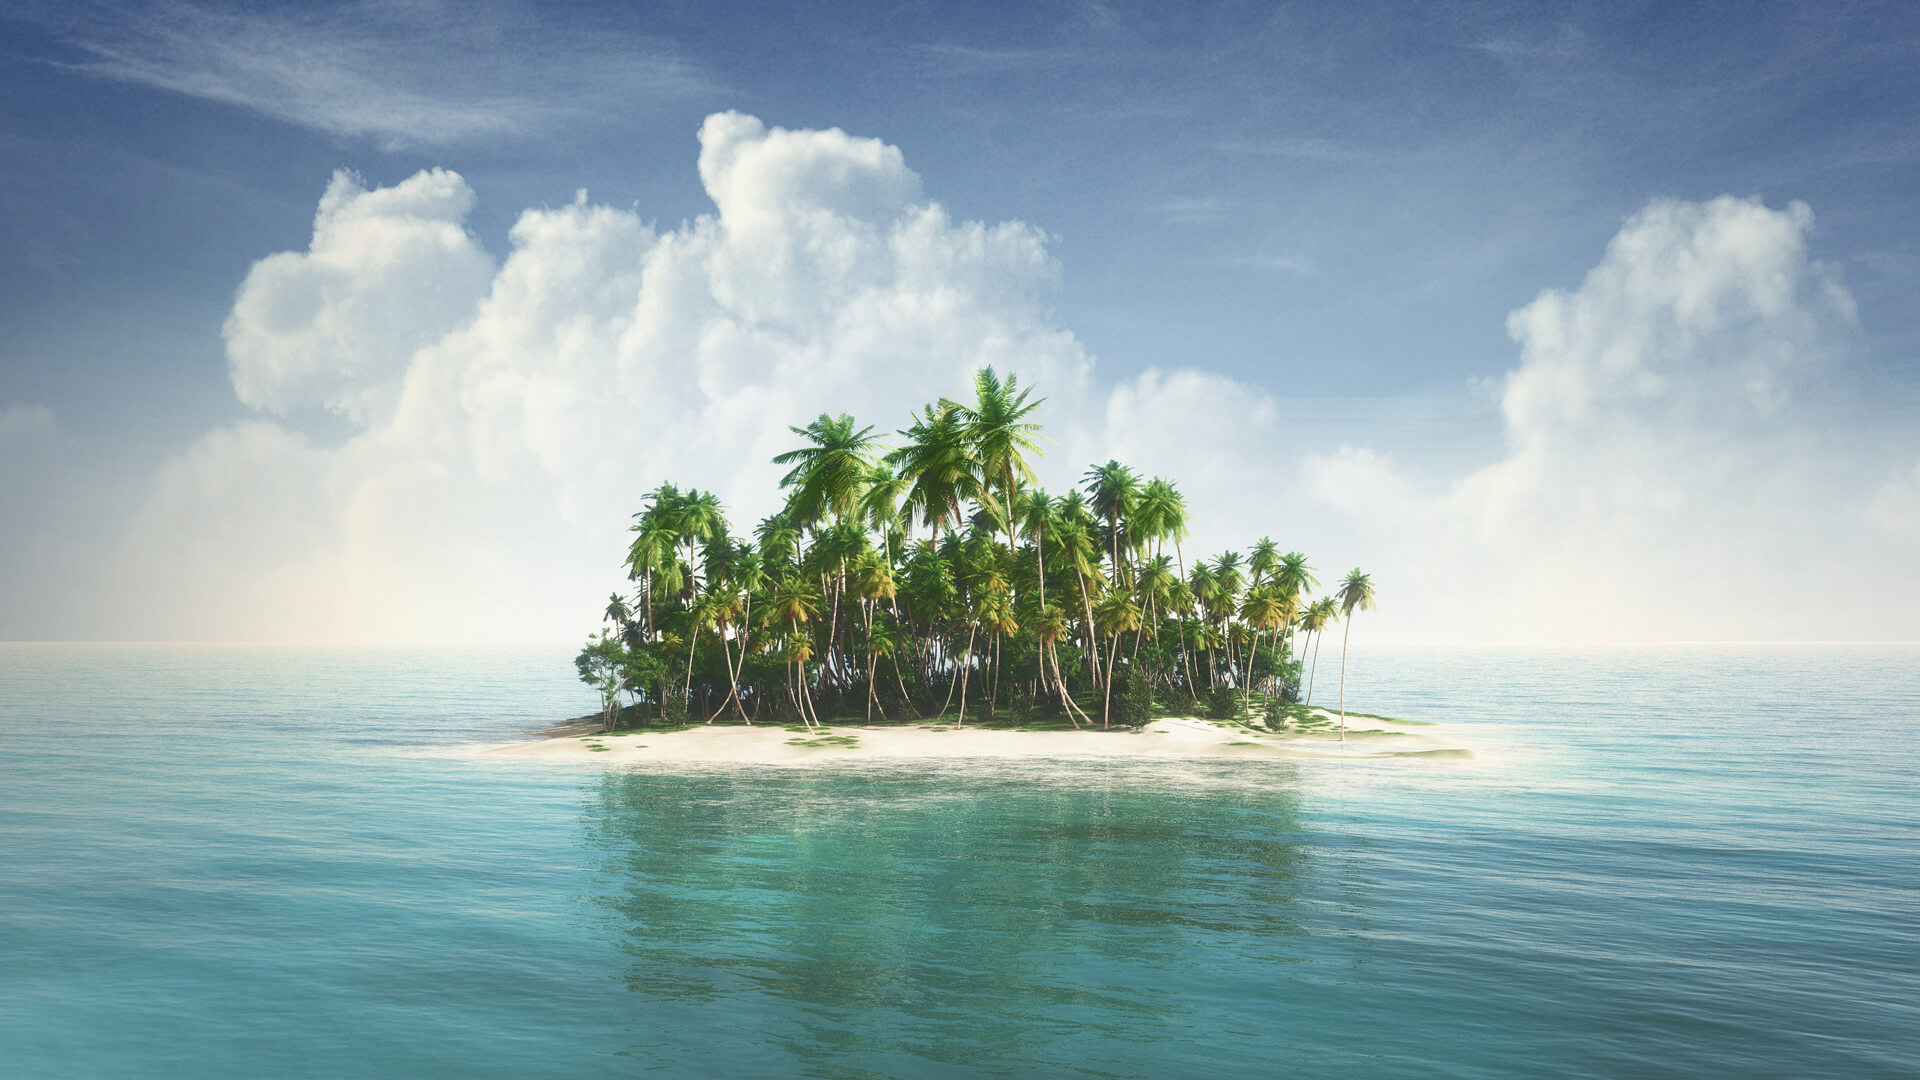 No content strategy is an island - Marketing Land